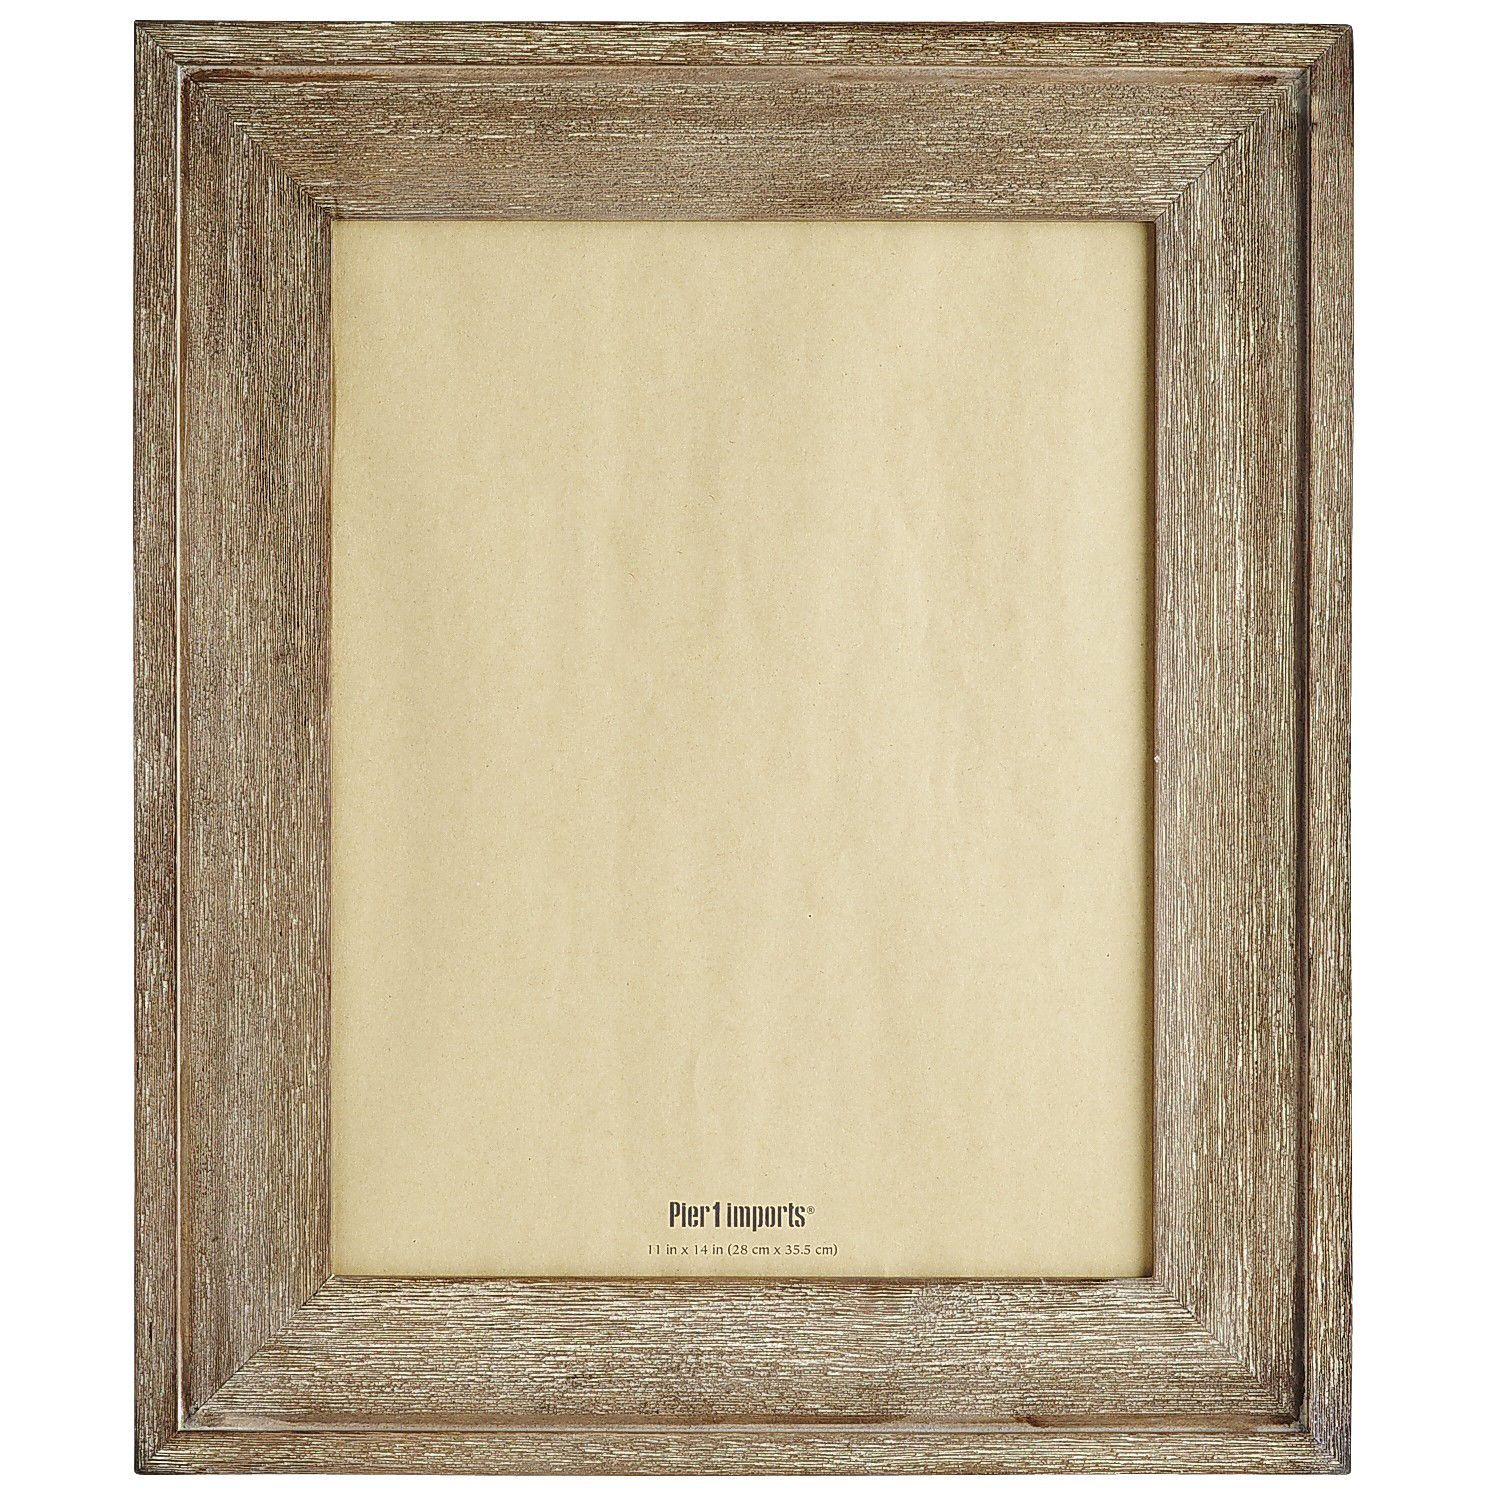 Barn Wood Smoke Gallery Frame - 11x14 | Pier 1 Imports | Framing ...